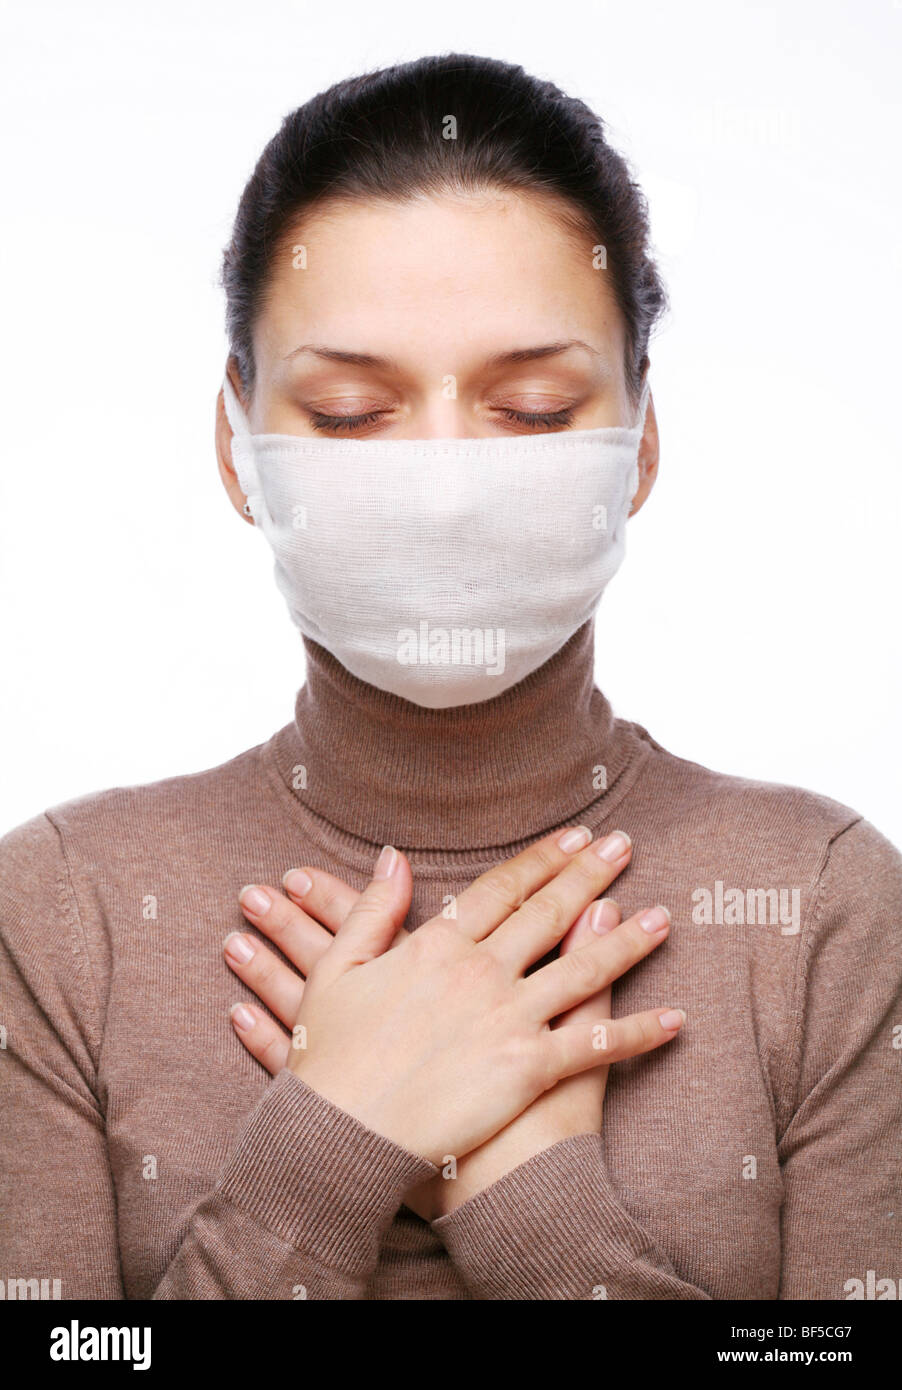 young-woman-in-medical-mask-keeping-hand